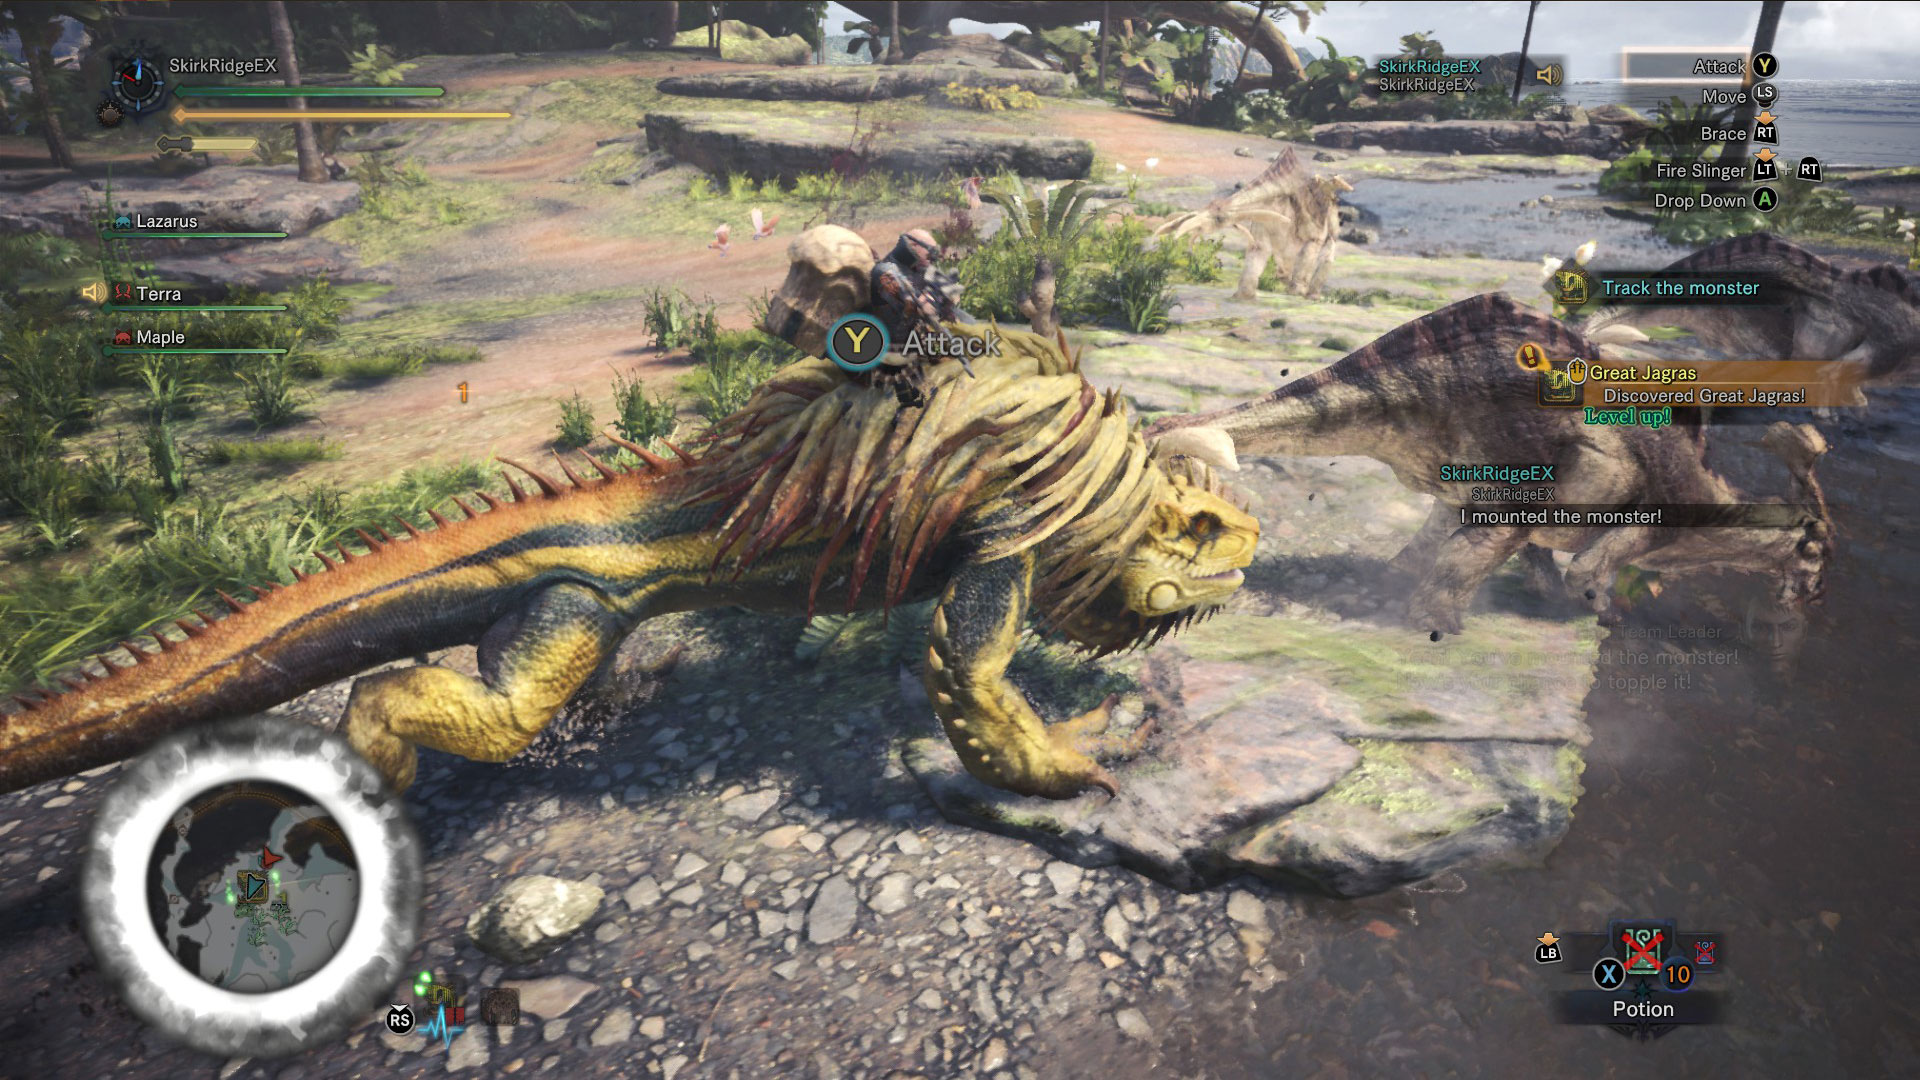 Player has mounted and is attacking the Great Jagras